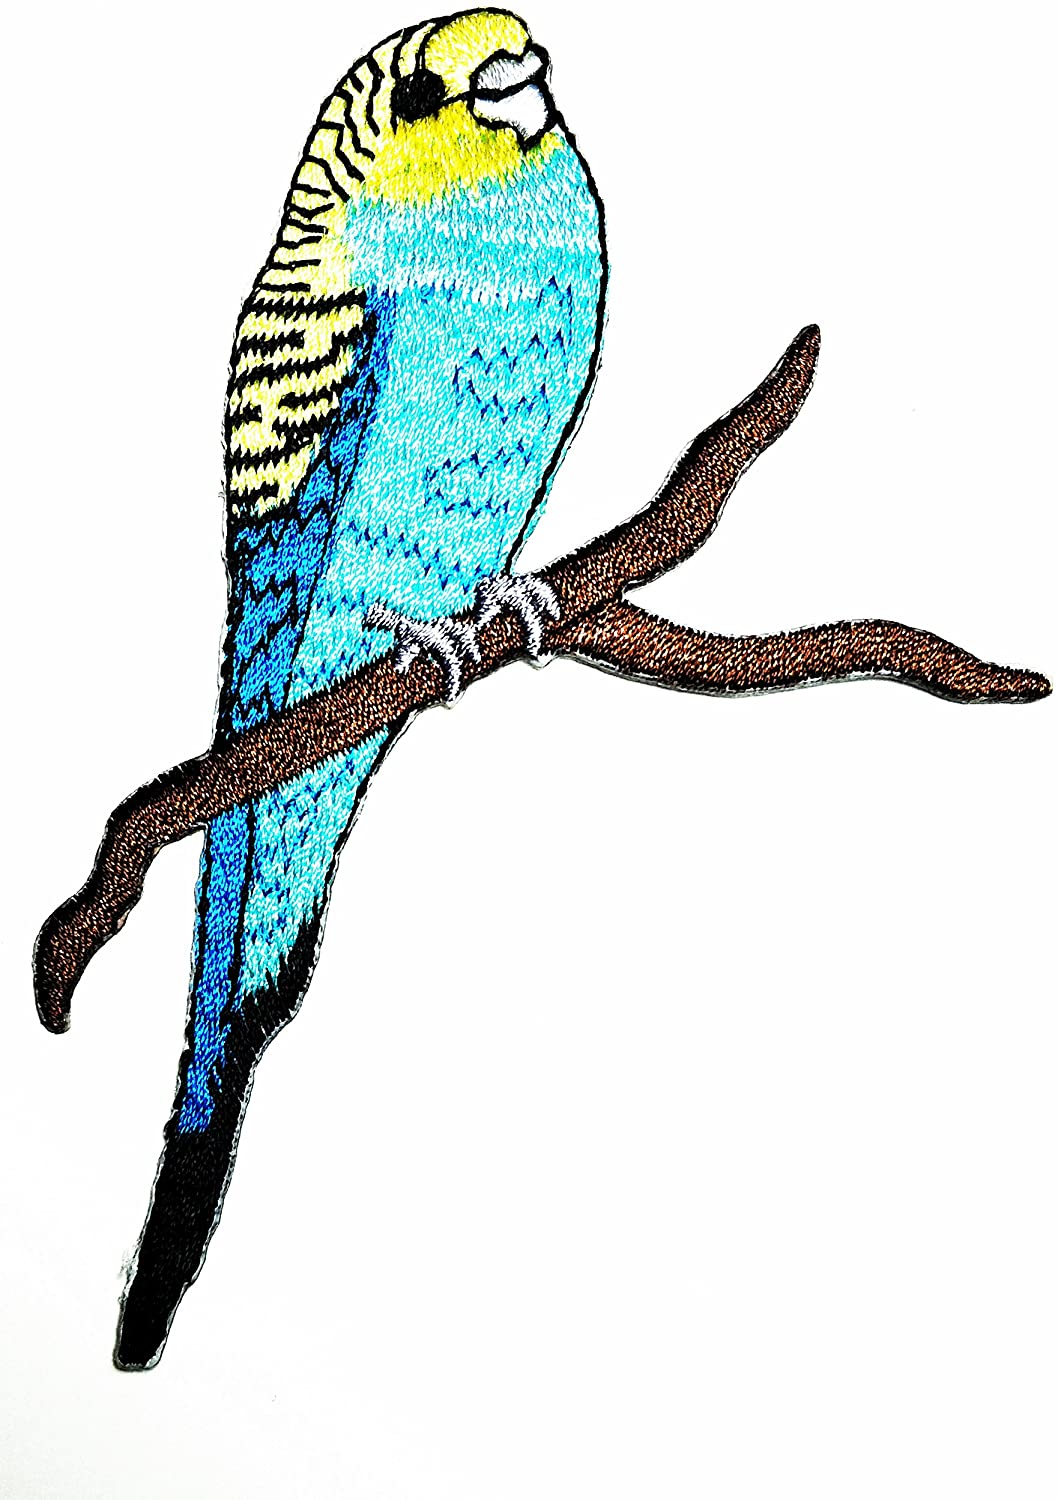 HHO Blue Parrots psittacines Bird Animal patch Parrot Red Bird Embroidered cartoon Patch Embroidered DIY Patches, Cute Applique Sew Iron on Kids Craft Patch for Bags Jackets Jeans Clothes